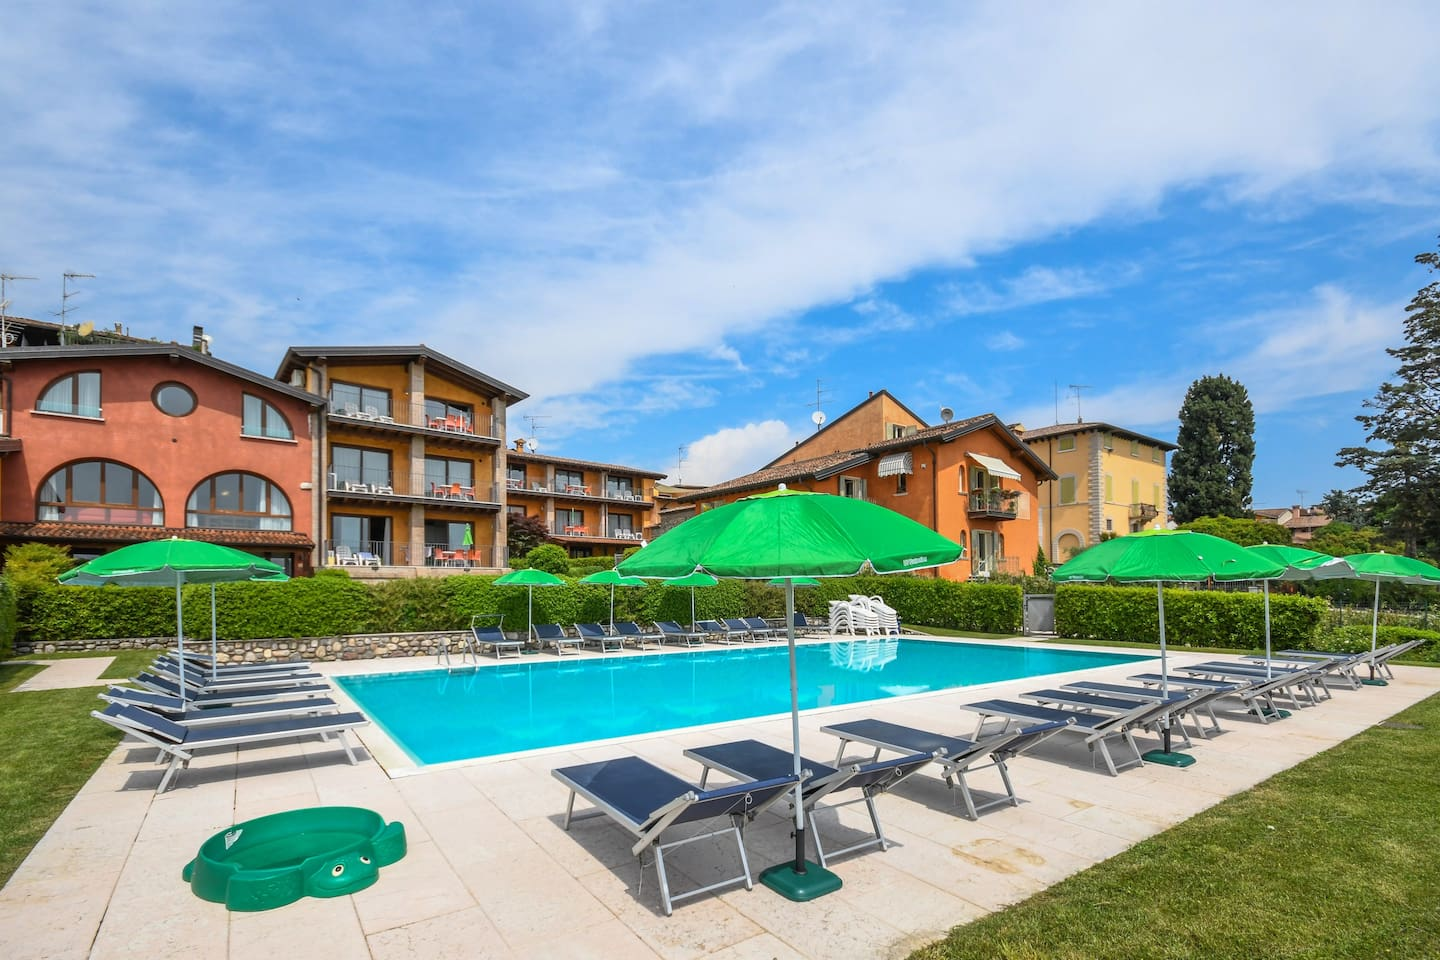 Sun loungers and parasols are at your disposal by the pool!